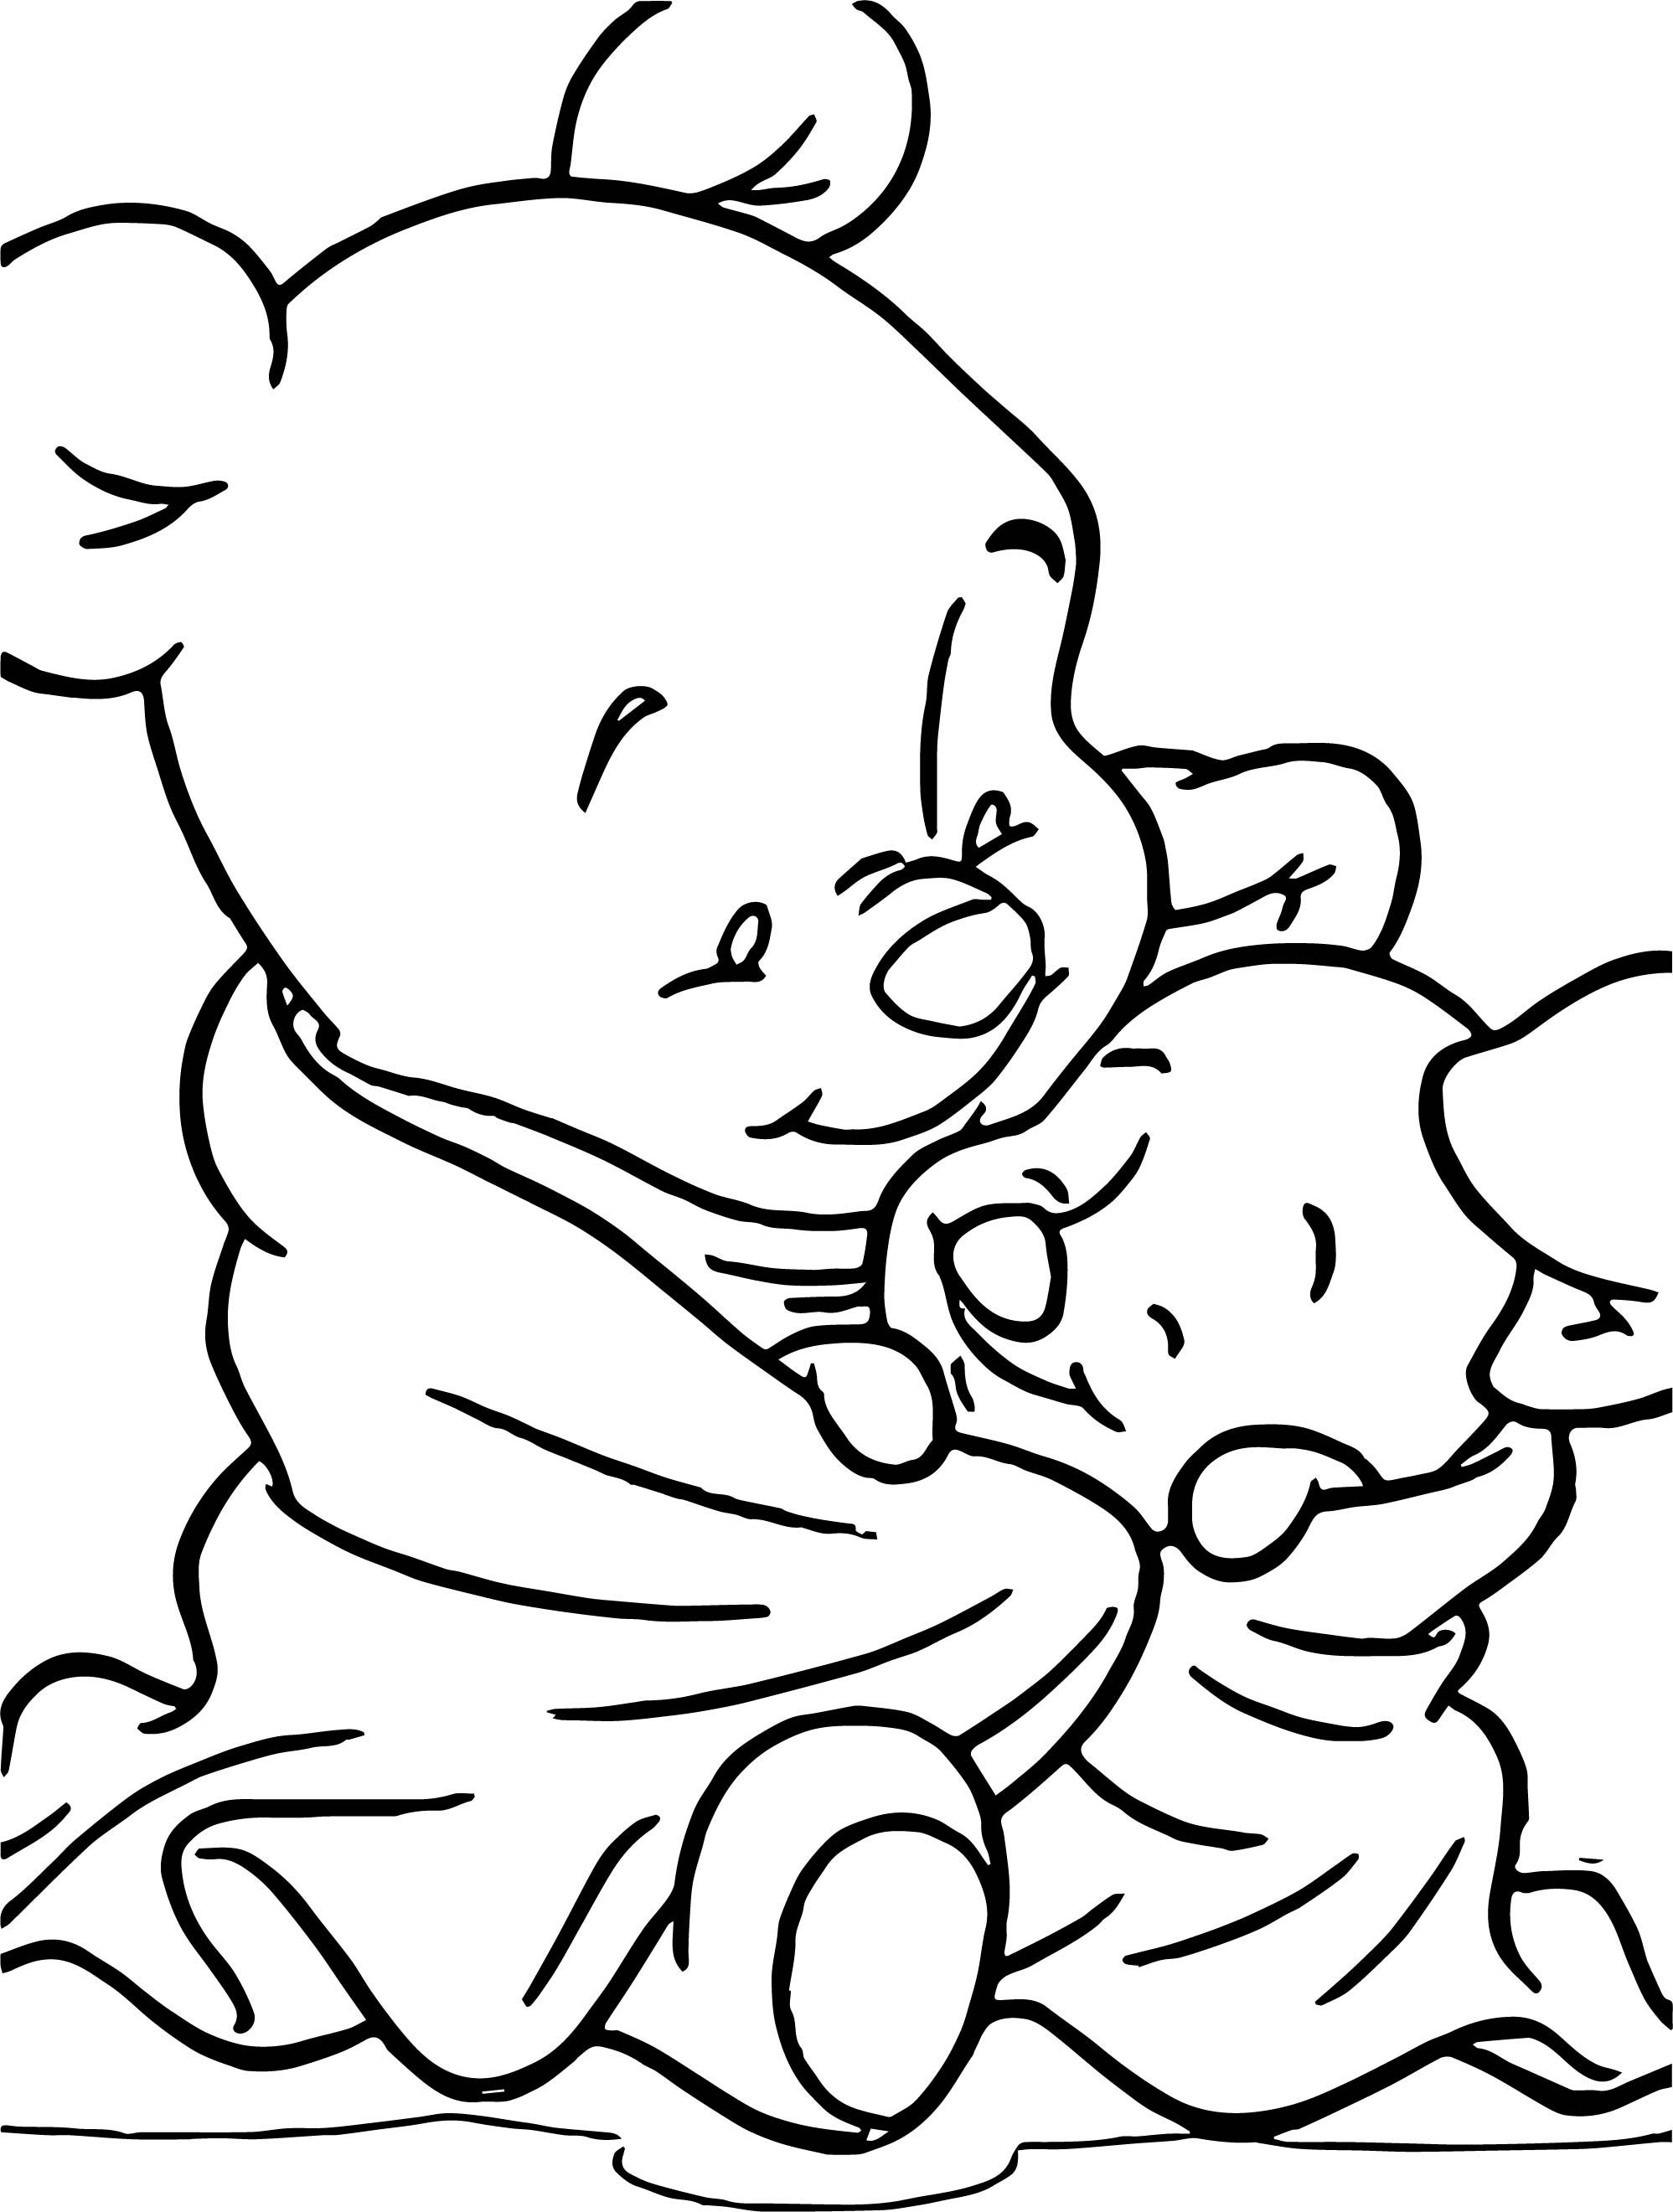 Awesome Baby Pooh Piglet Blanket Coloring Page Coloring Pages